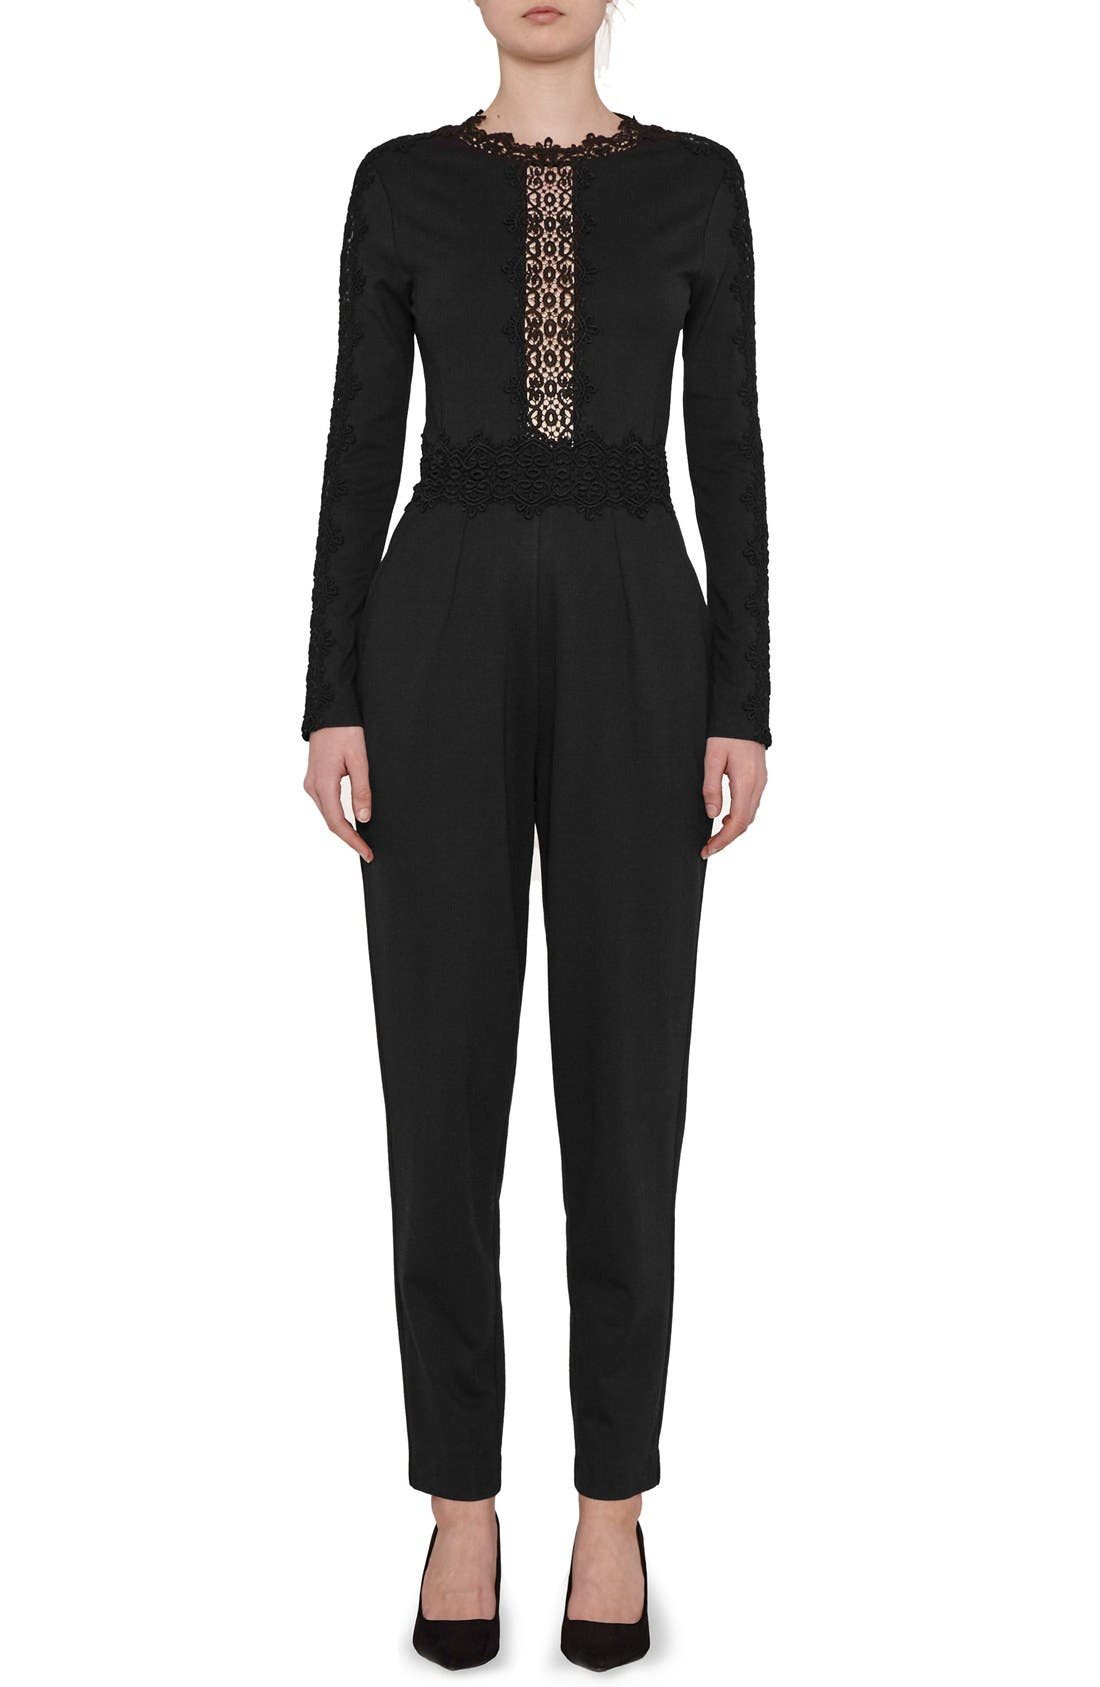 Alternate Image 1 Selected - French Connection Petra Lace Inset Jumpsuit